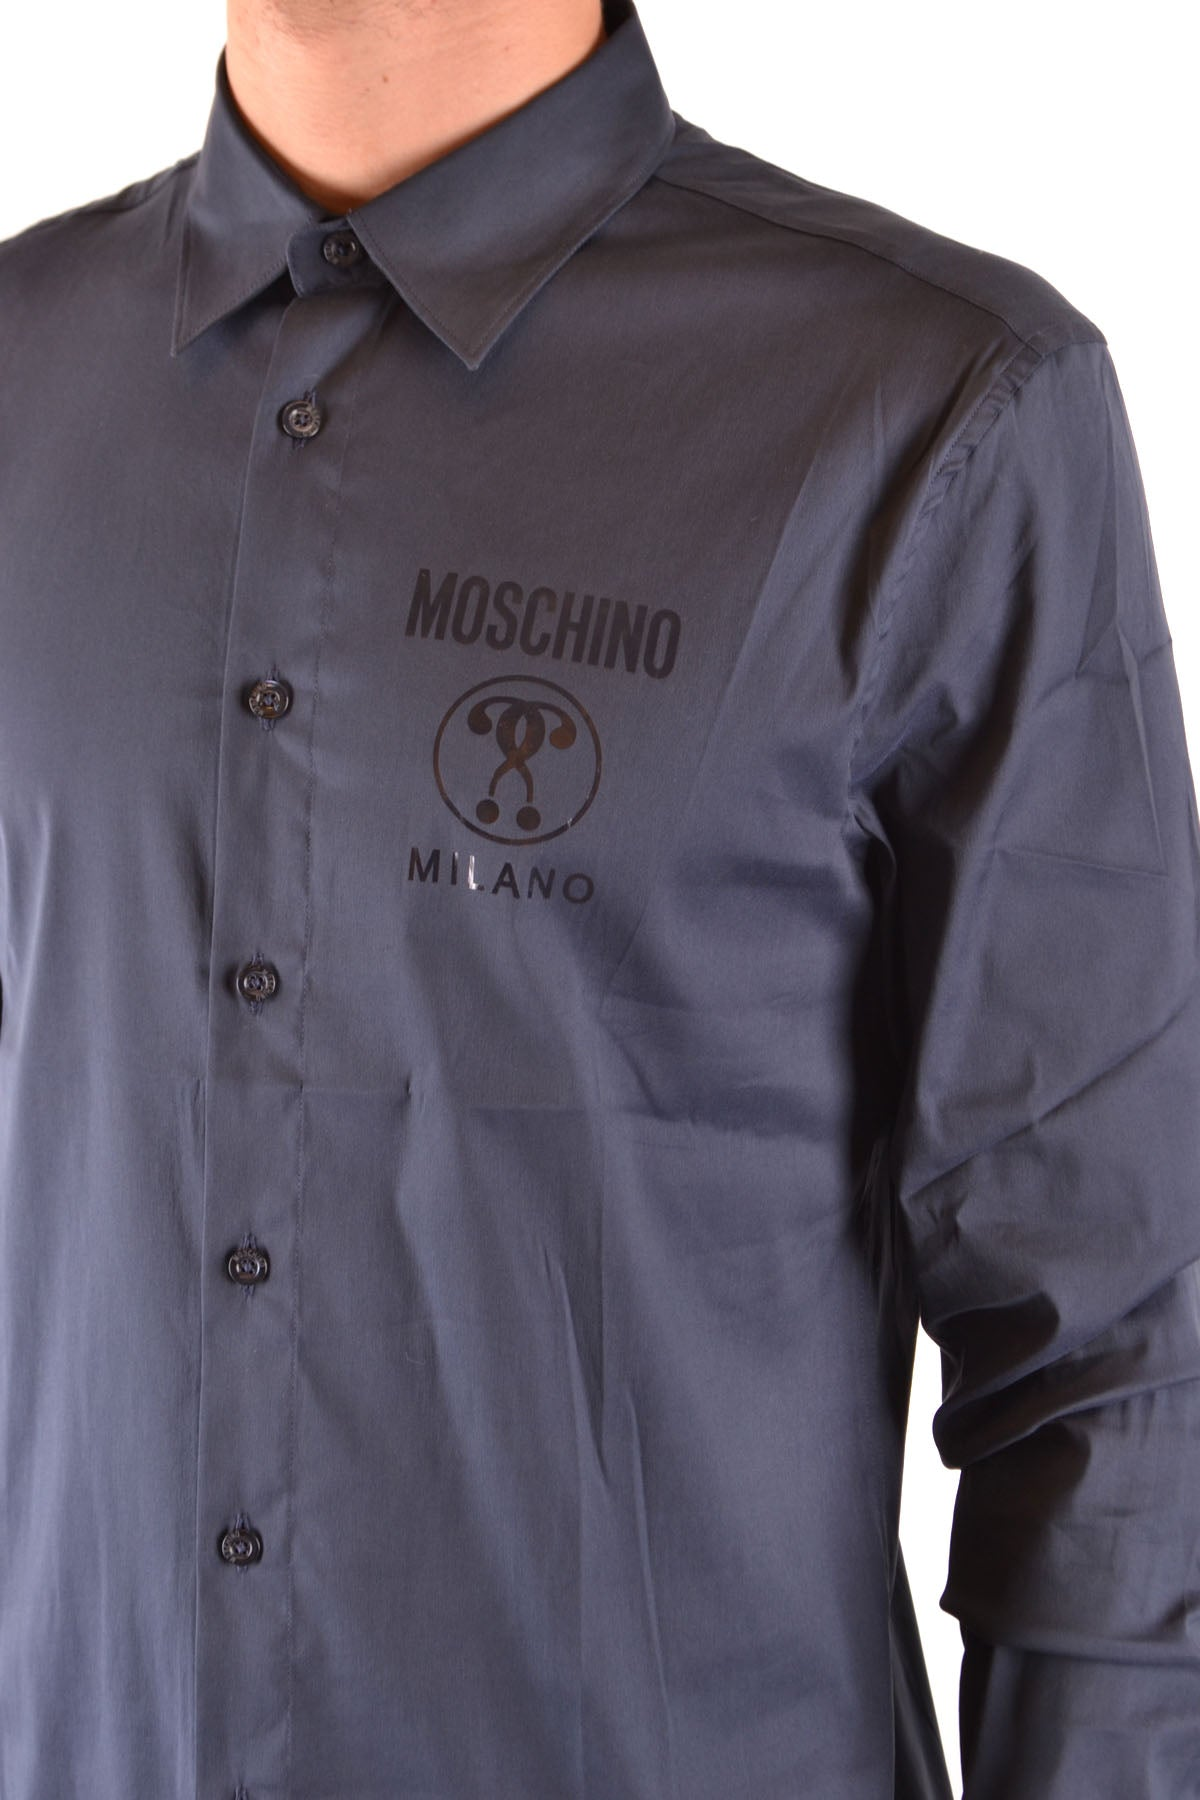 Shirt Moschino--Product Details Terms: New With LabelYear: 2019Main Color: BlueGender: ManMade In: PortugalManufacturer Part Number: Z A0204 5236 0510Size: Collar SizeSeason: Spring / SummerClothing Type: CamiciaComposition: Cotton 77%, Polyamide 20%, Tissue 3%-Keyomi-Sook